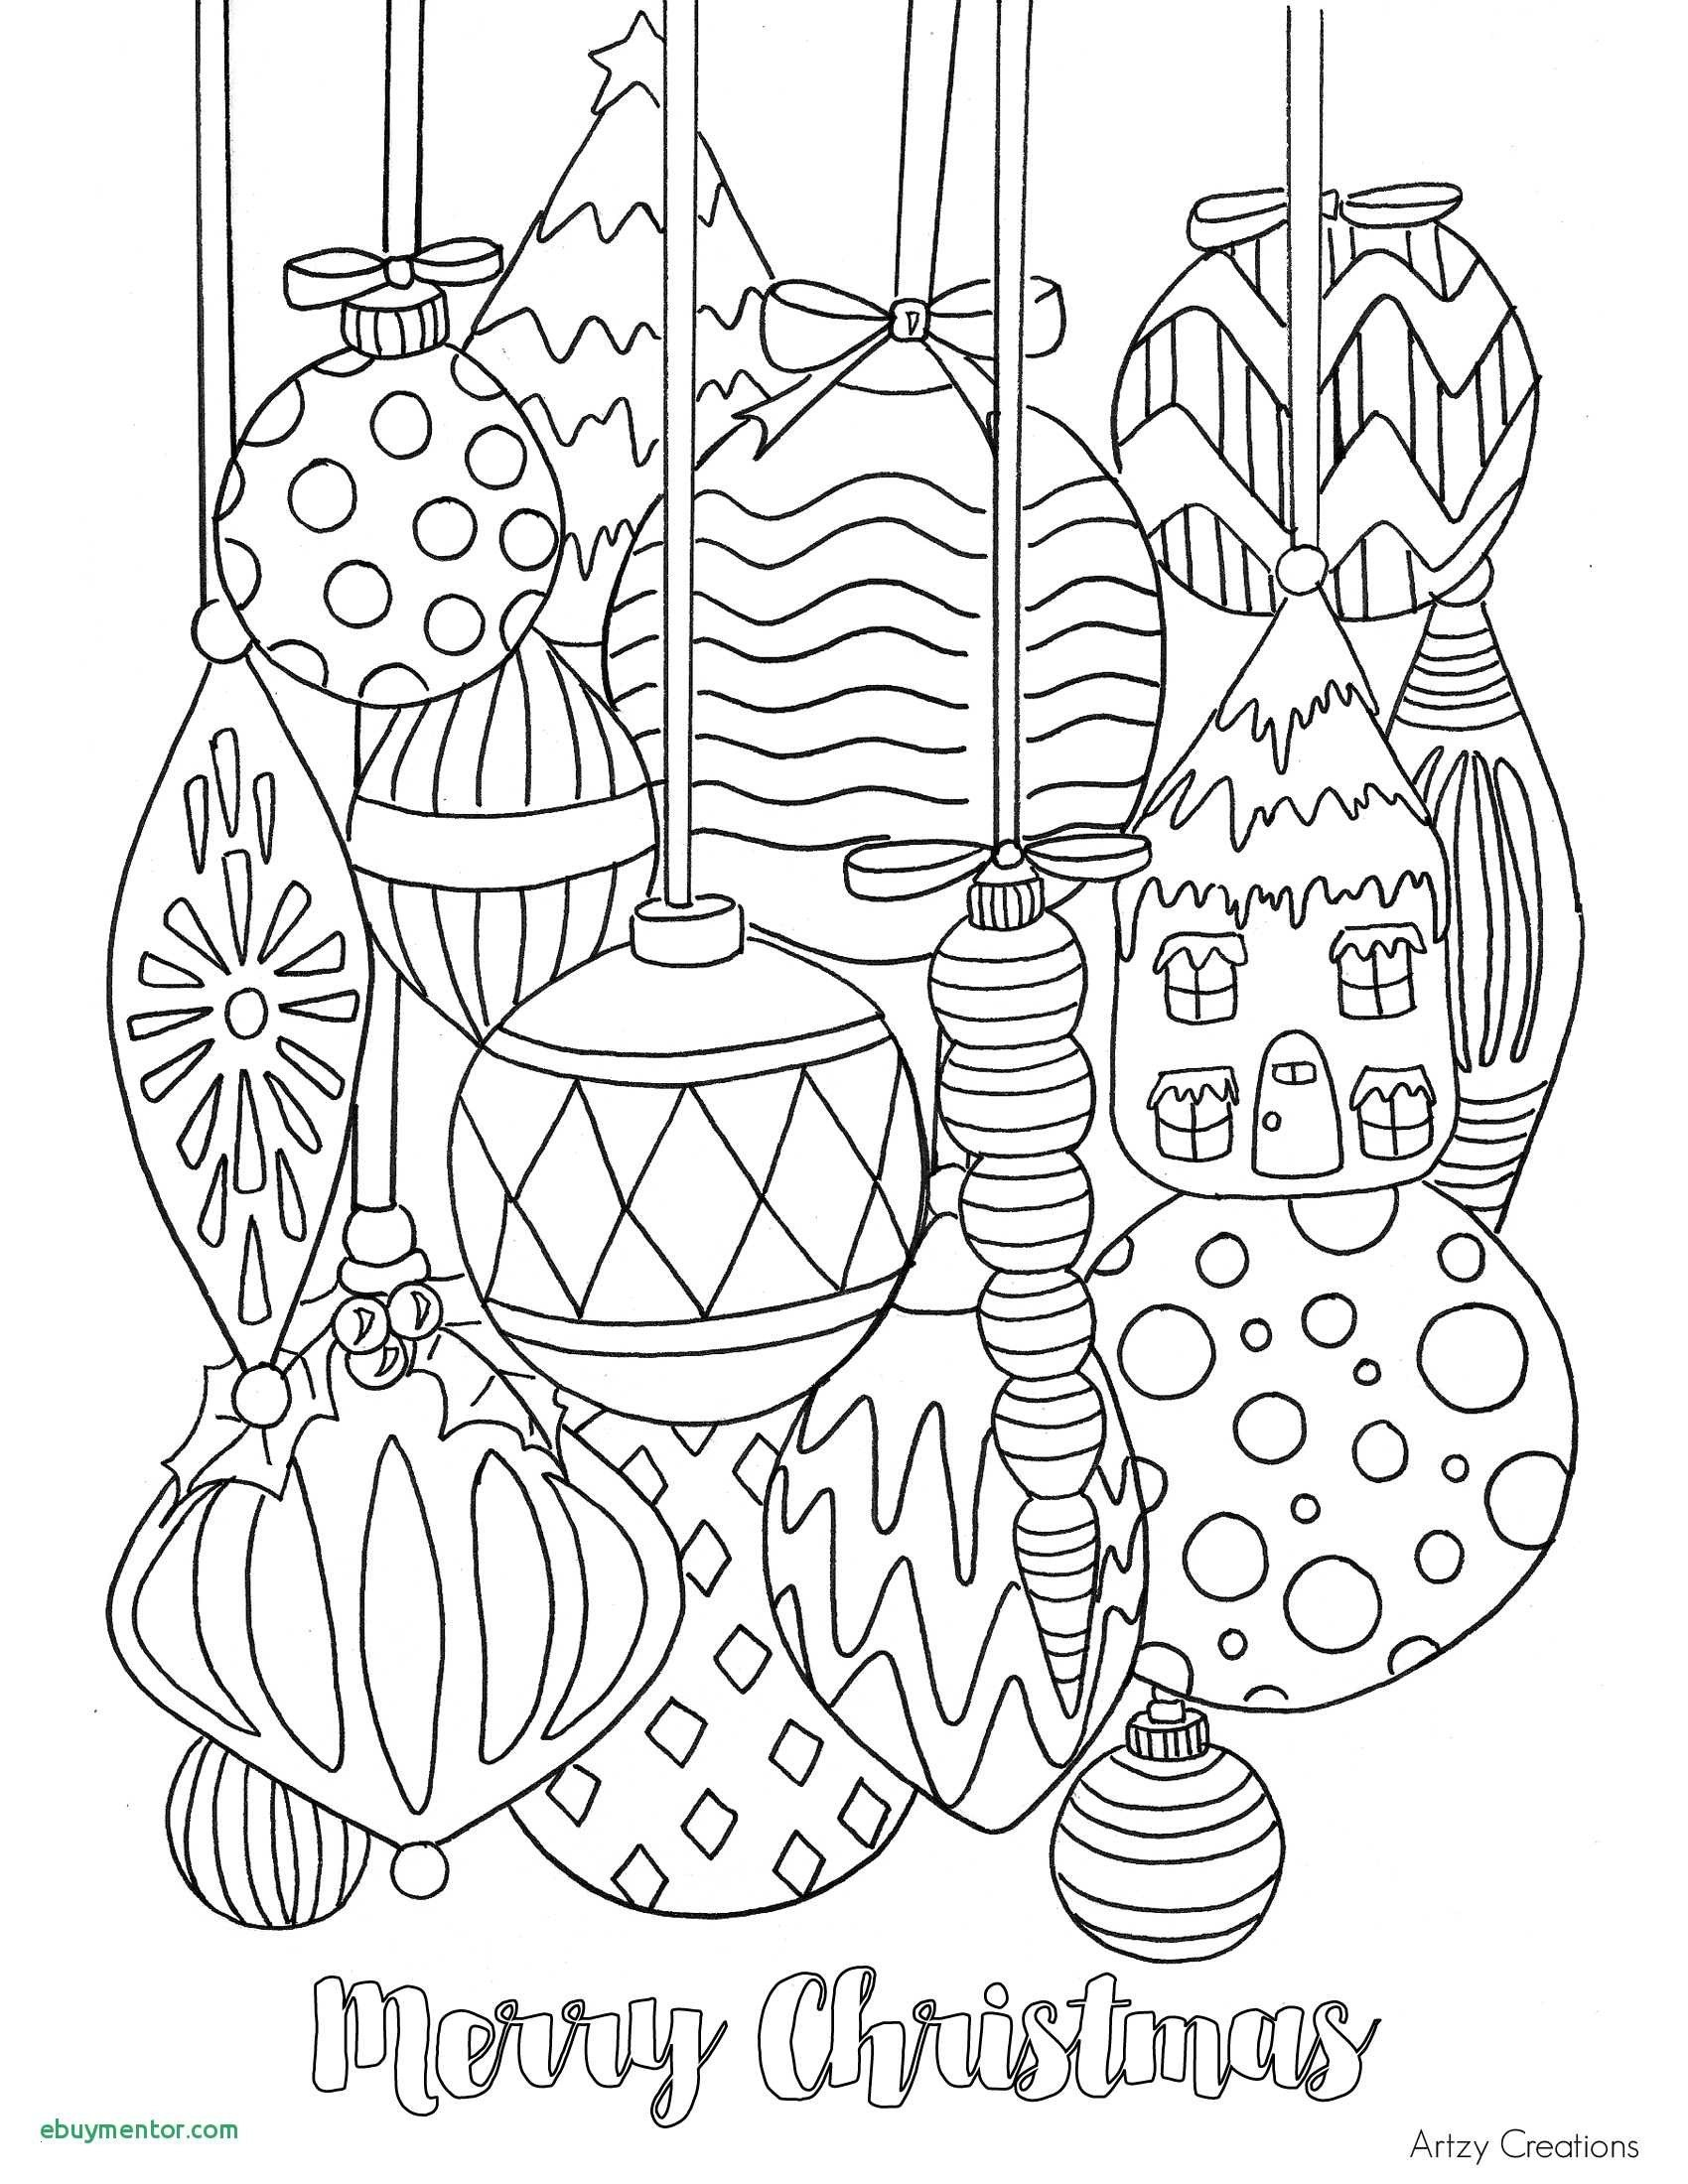 Vintage Christmas Coloring Book Pages With Fresh Thomas The Train CrosbyAndCosg